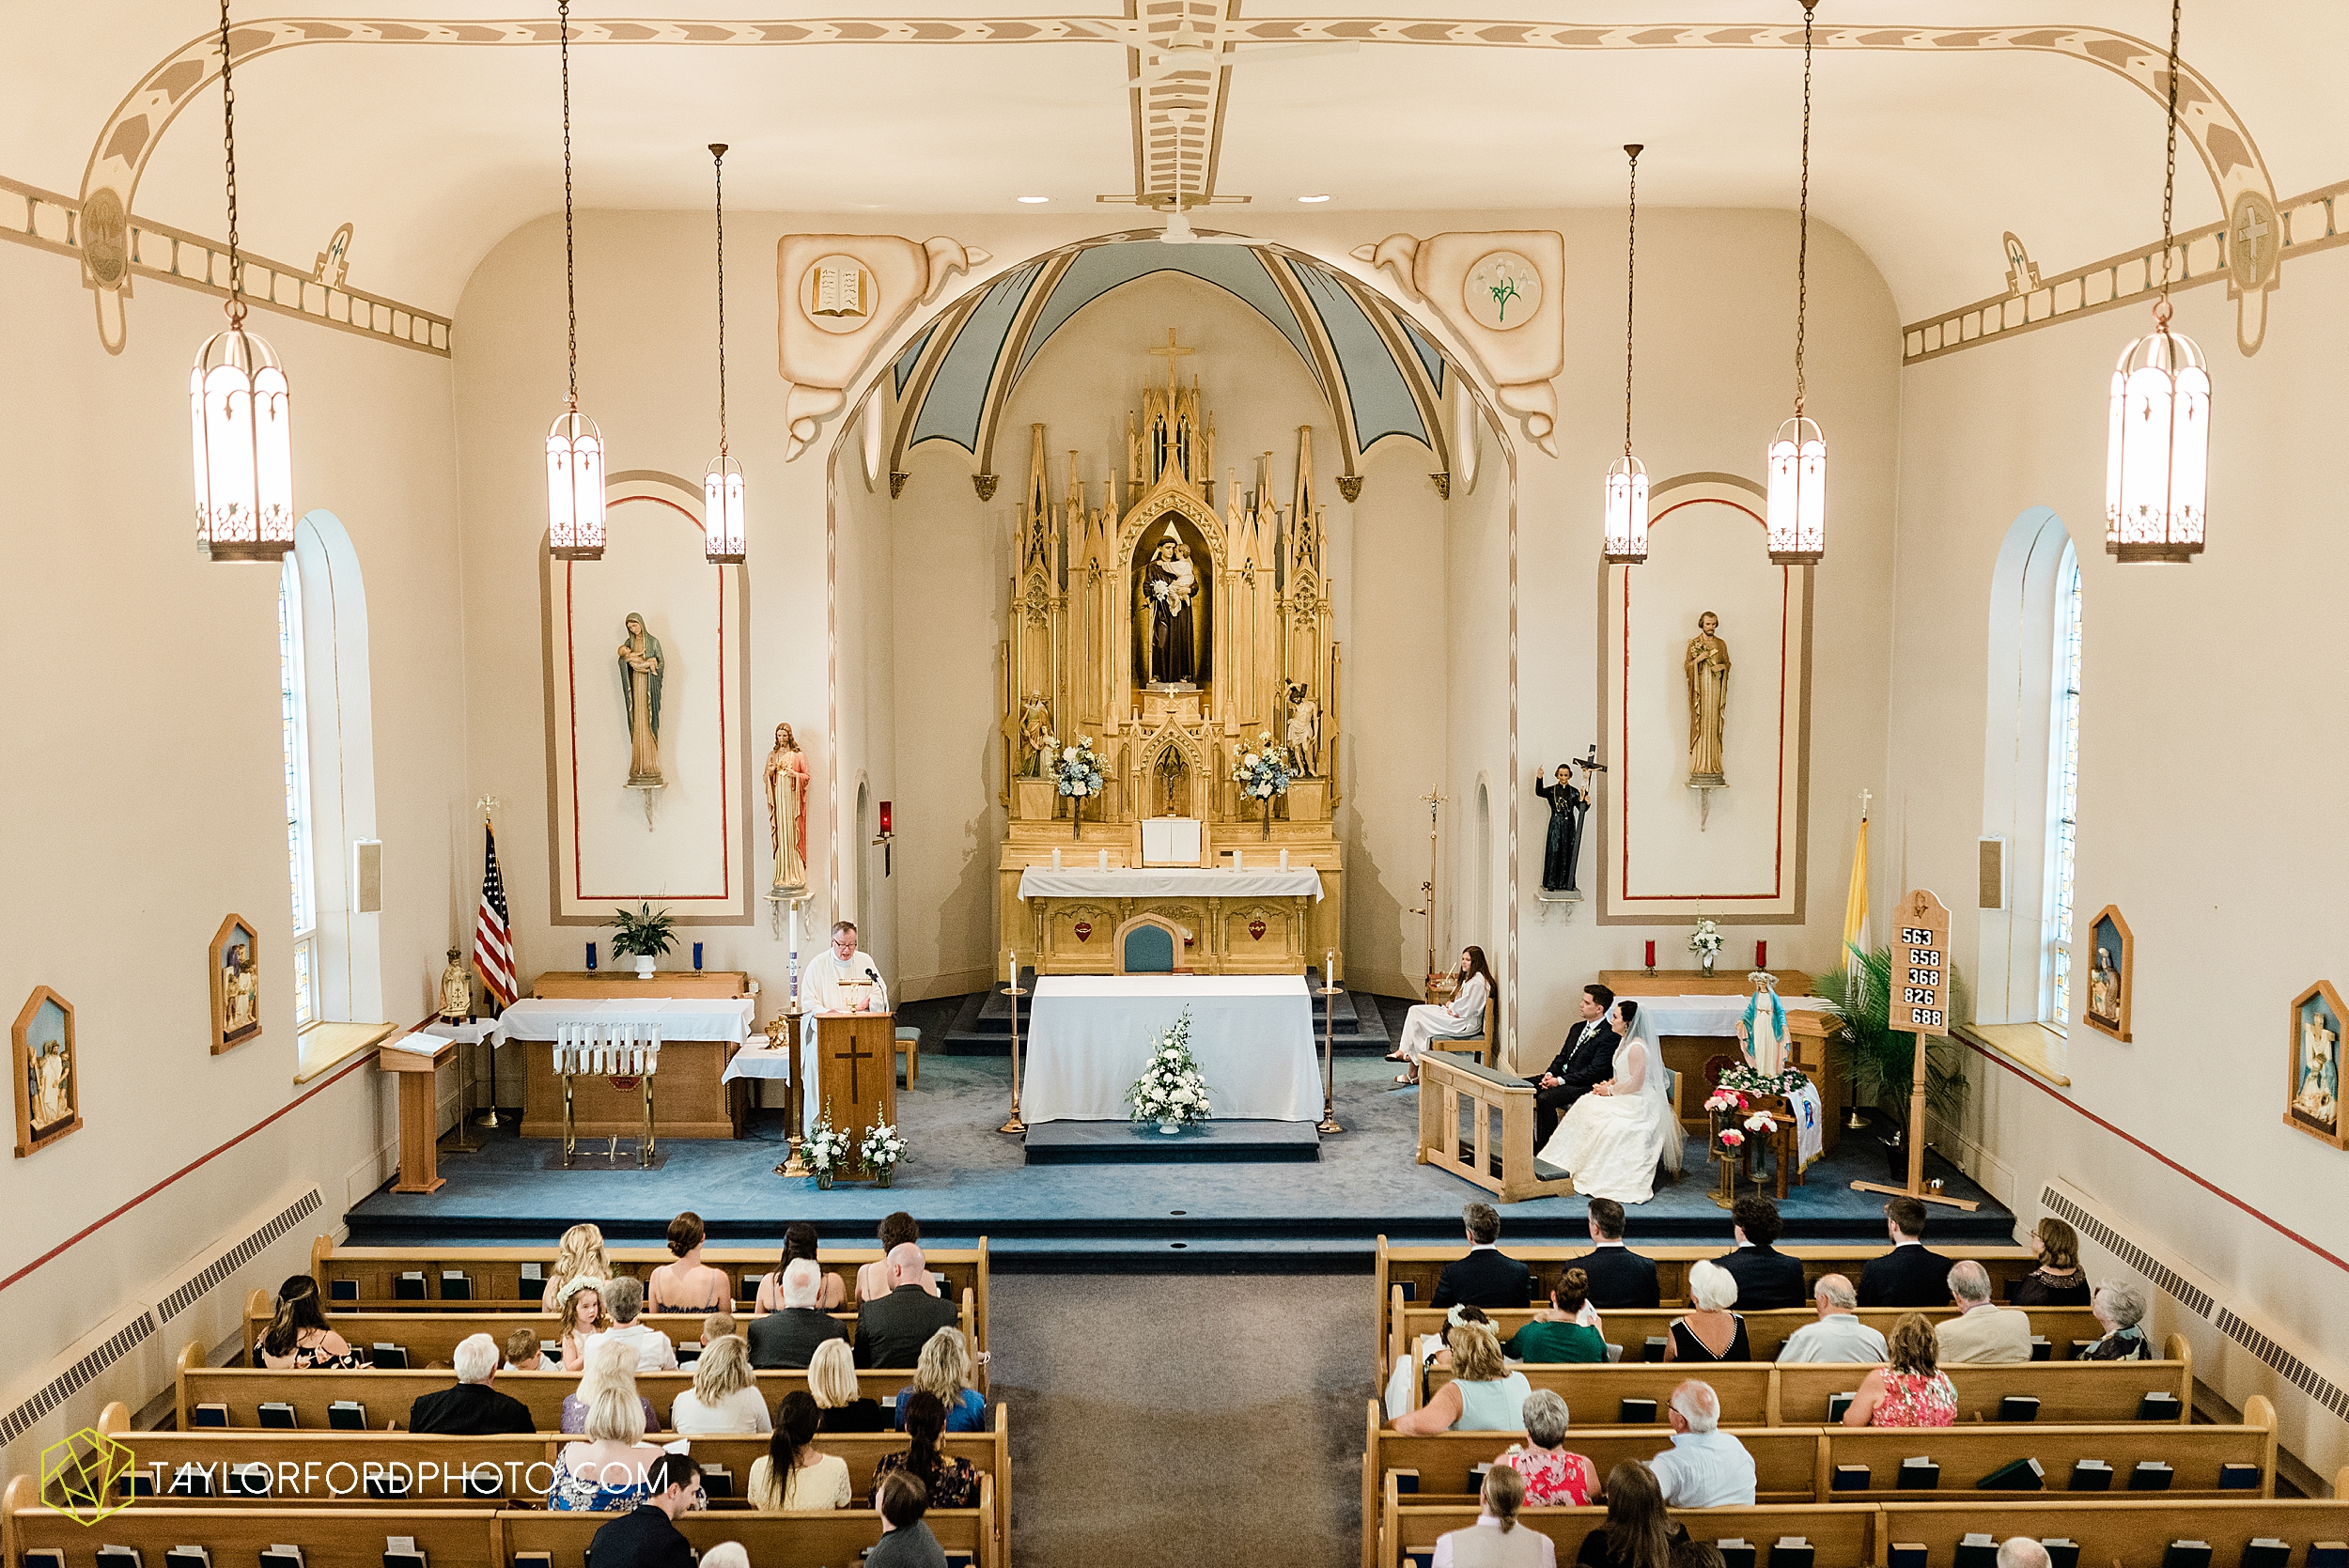 fort-recovery-ohio-saint-anthony-church-columbia-city-joseph-decuis-farmstead-tri-lakes-shriner-lake-wawasee-wedding-photographer-photography-taylor-ford-hirschy-photographer_2873.jpg